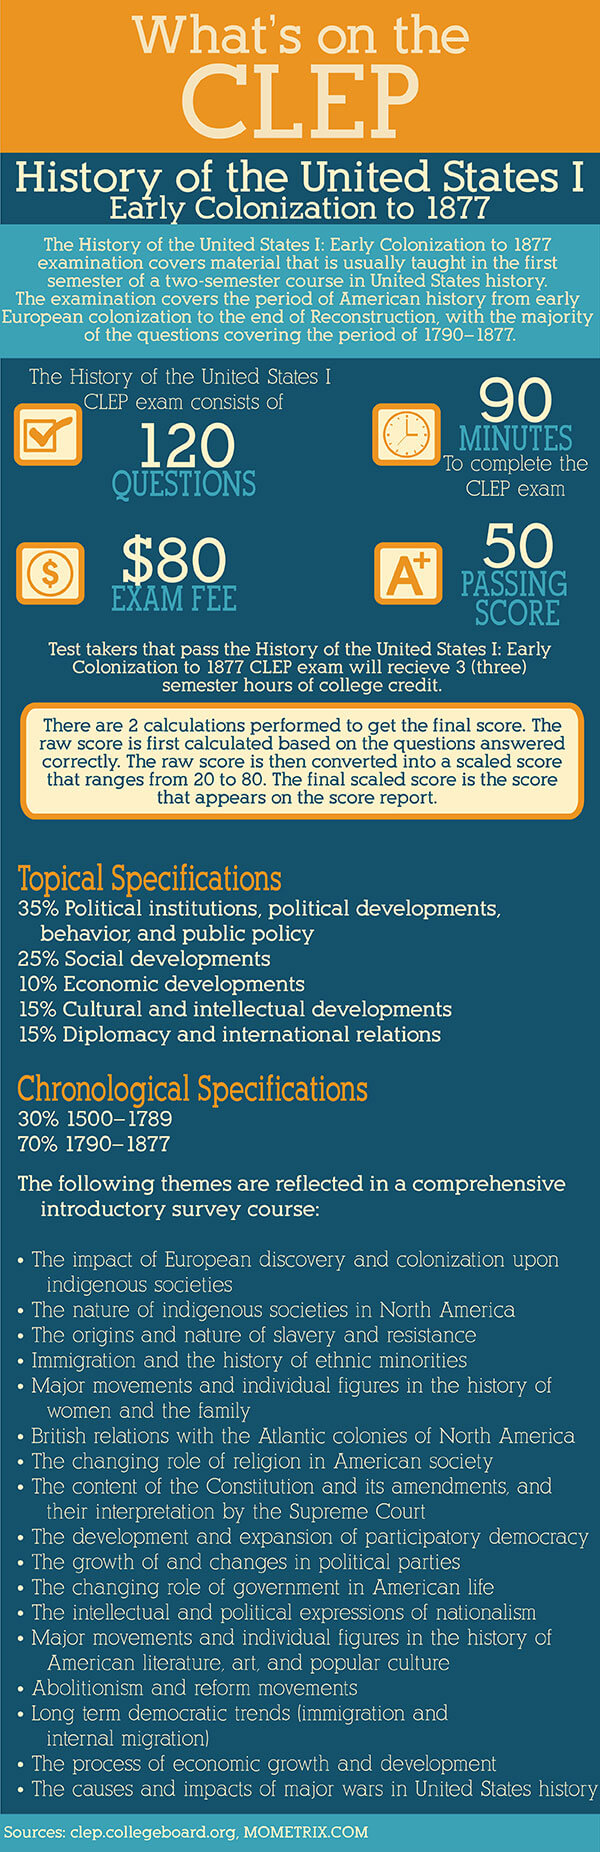 Infographic explaining History of the United States 2 CLEP test